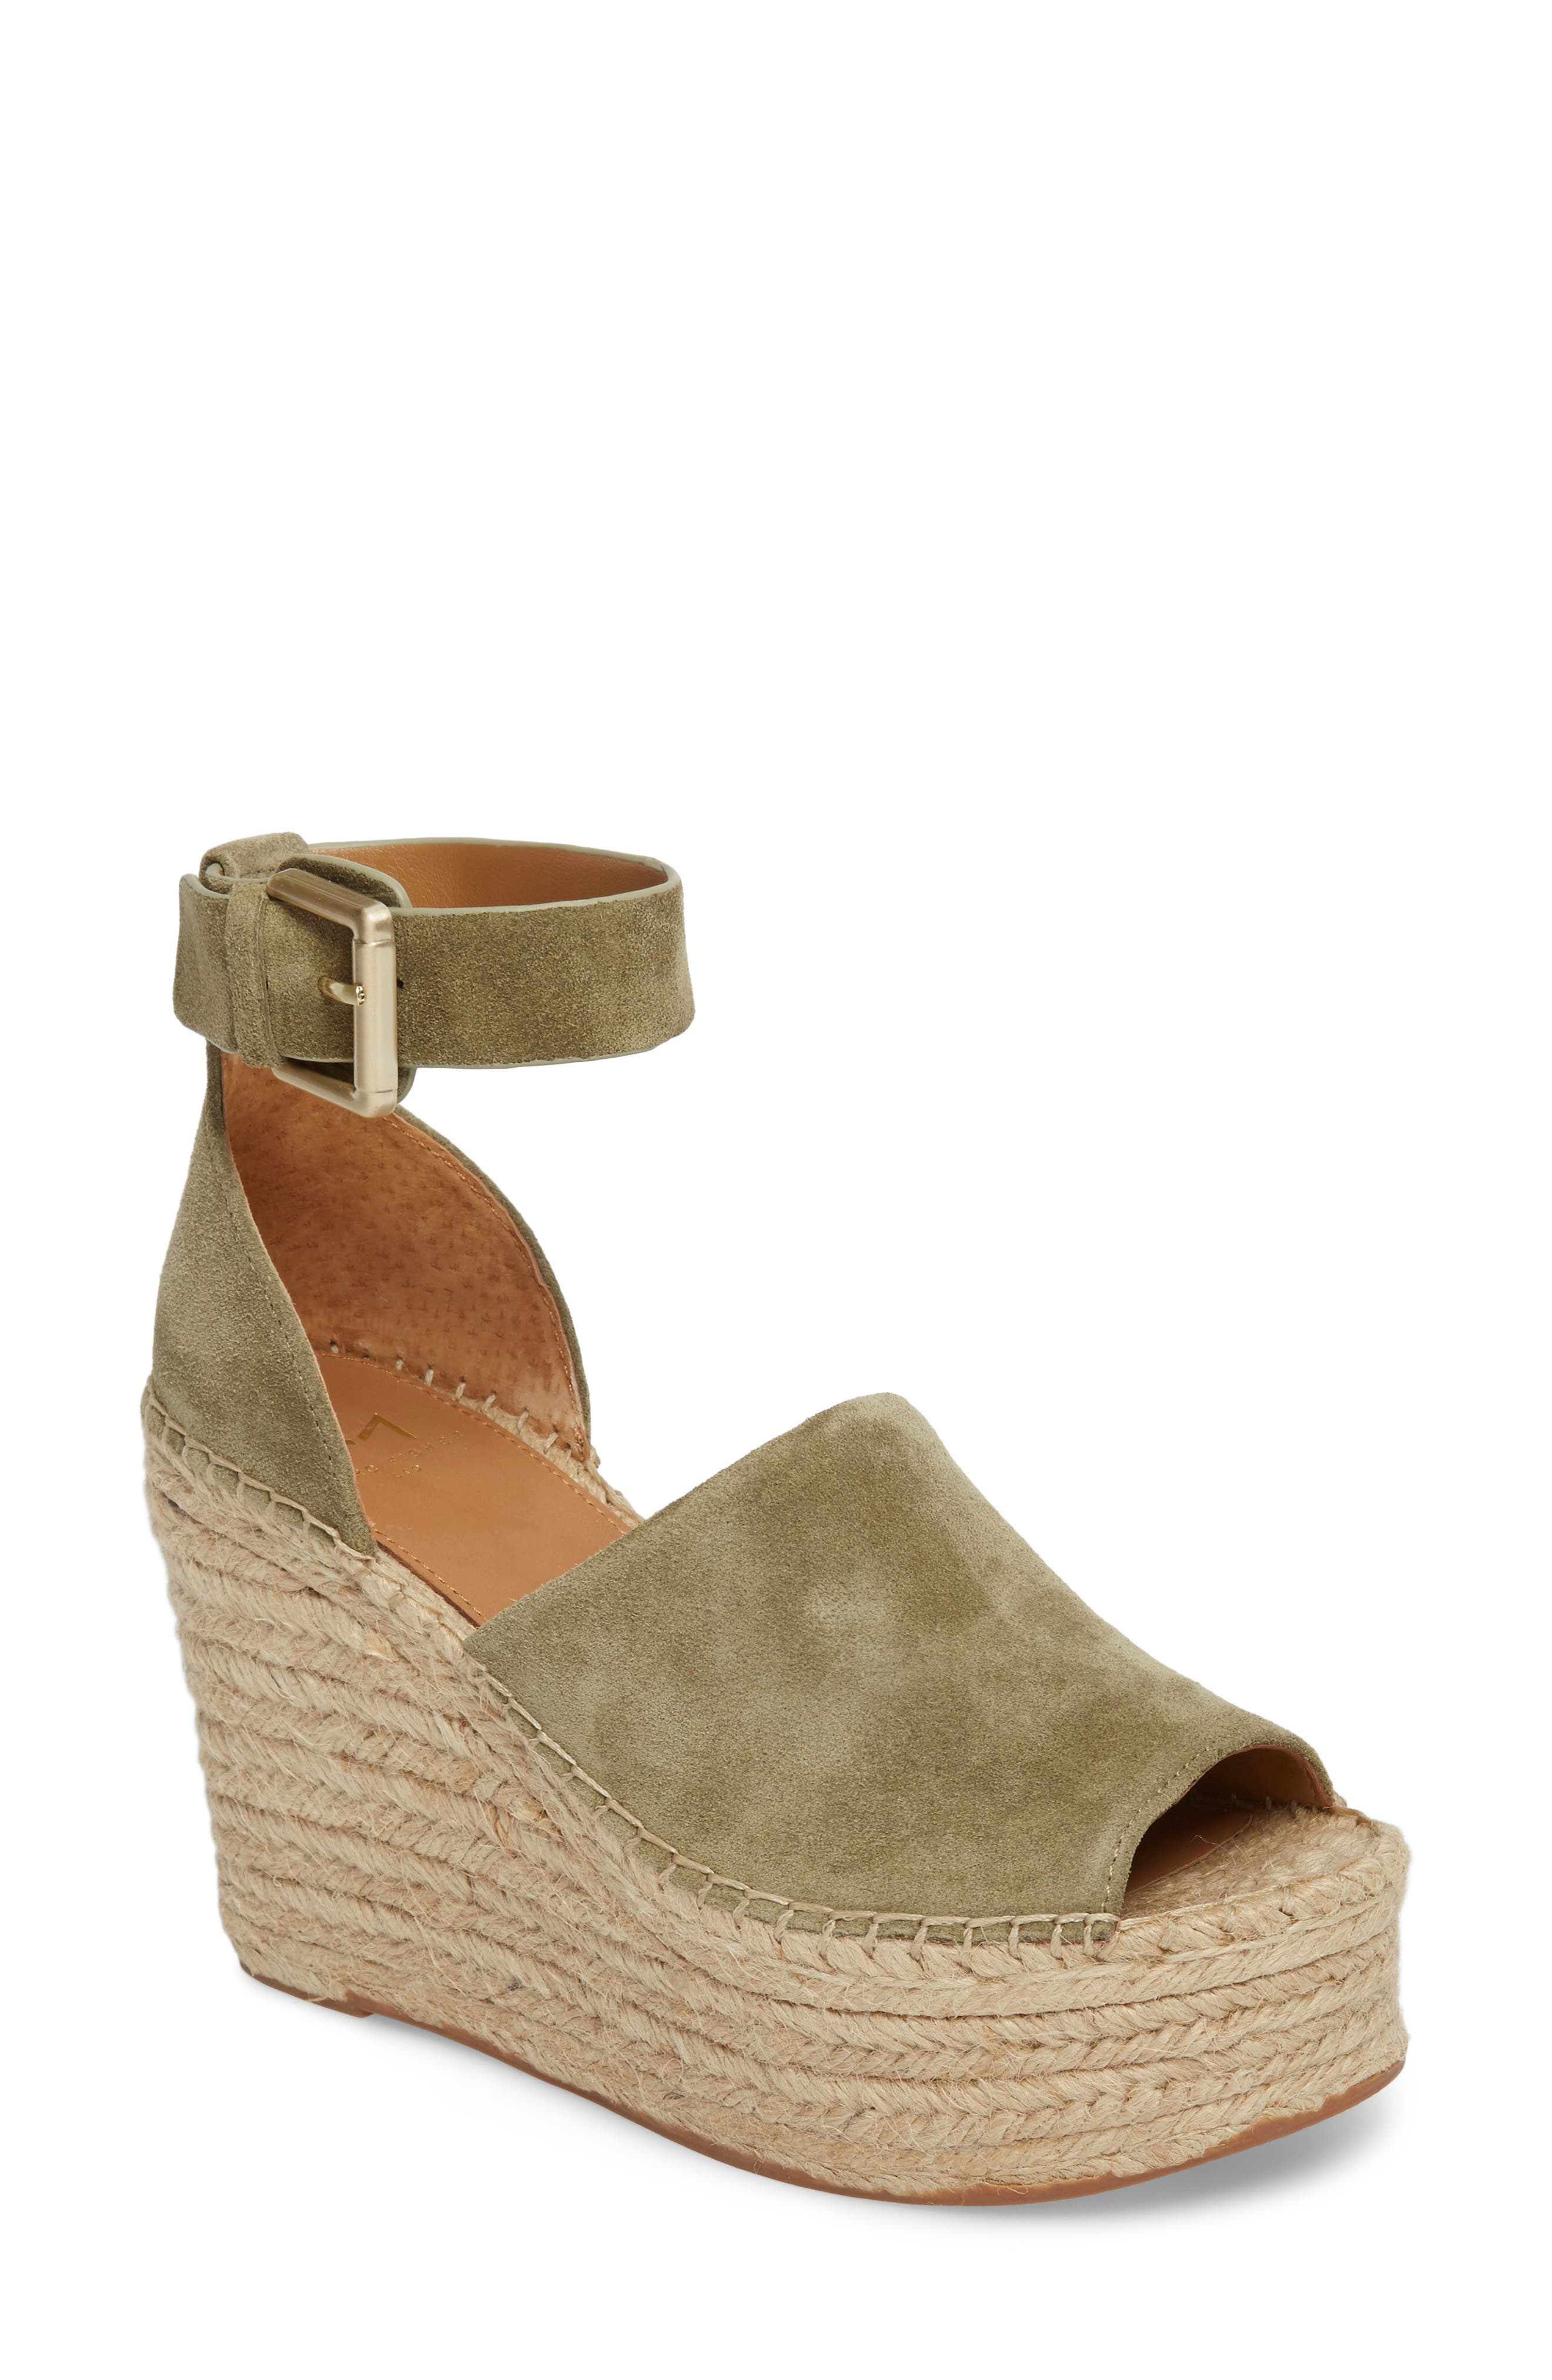 Marc Fisher Ltd Adalyn Espadrille Wedge Sandal, Green